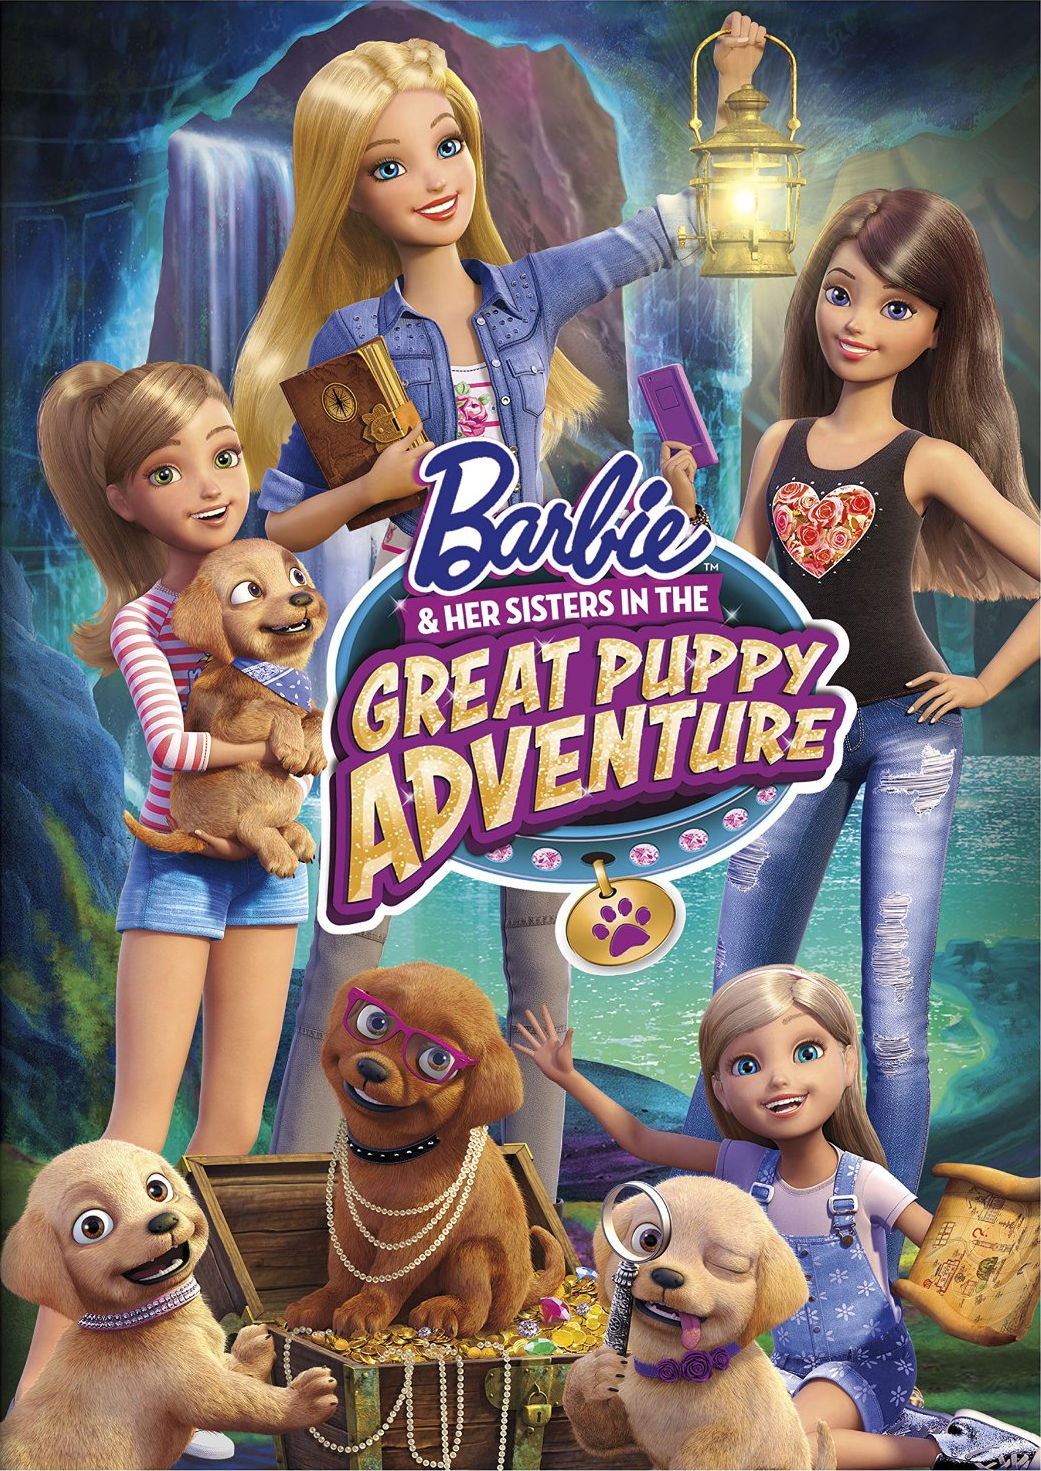 a definitive ranking of the worst (and best) barbie movies ever made